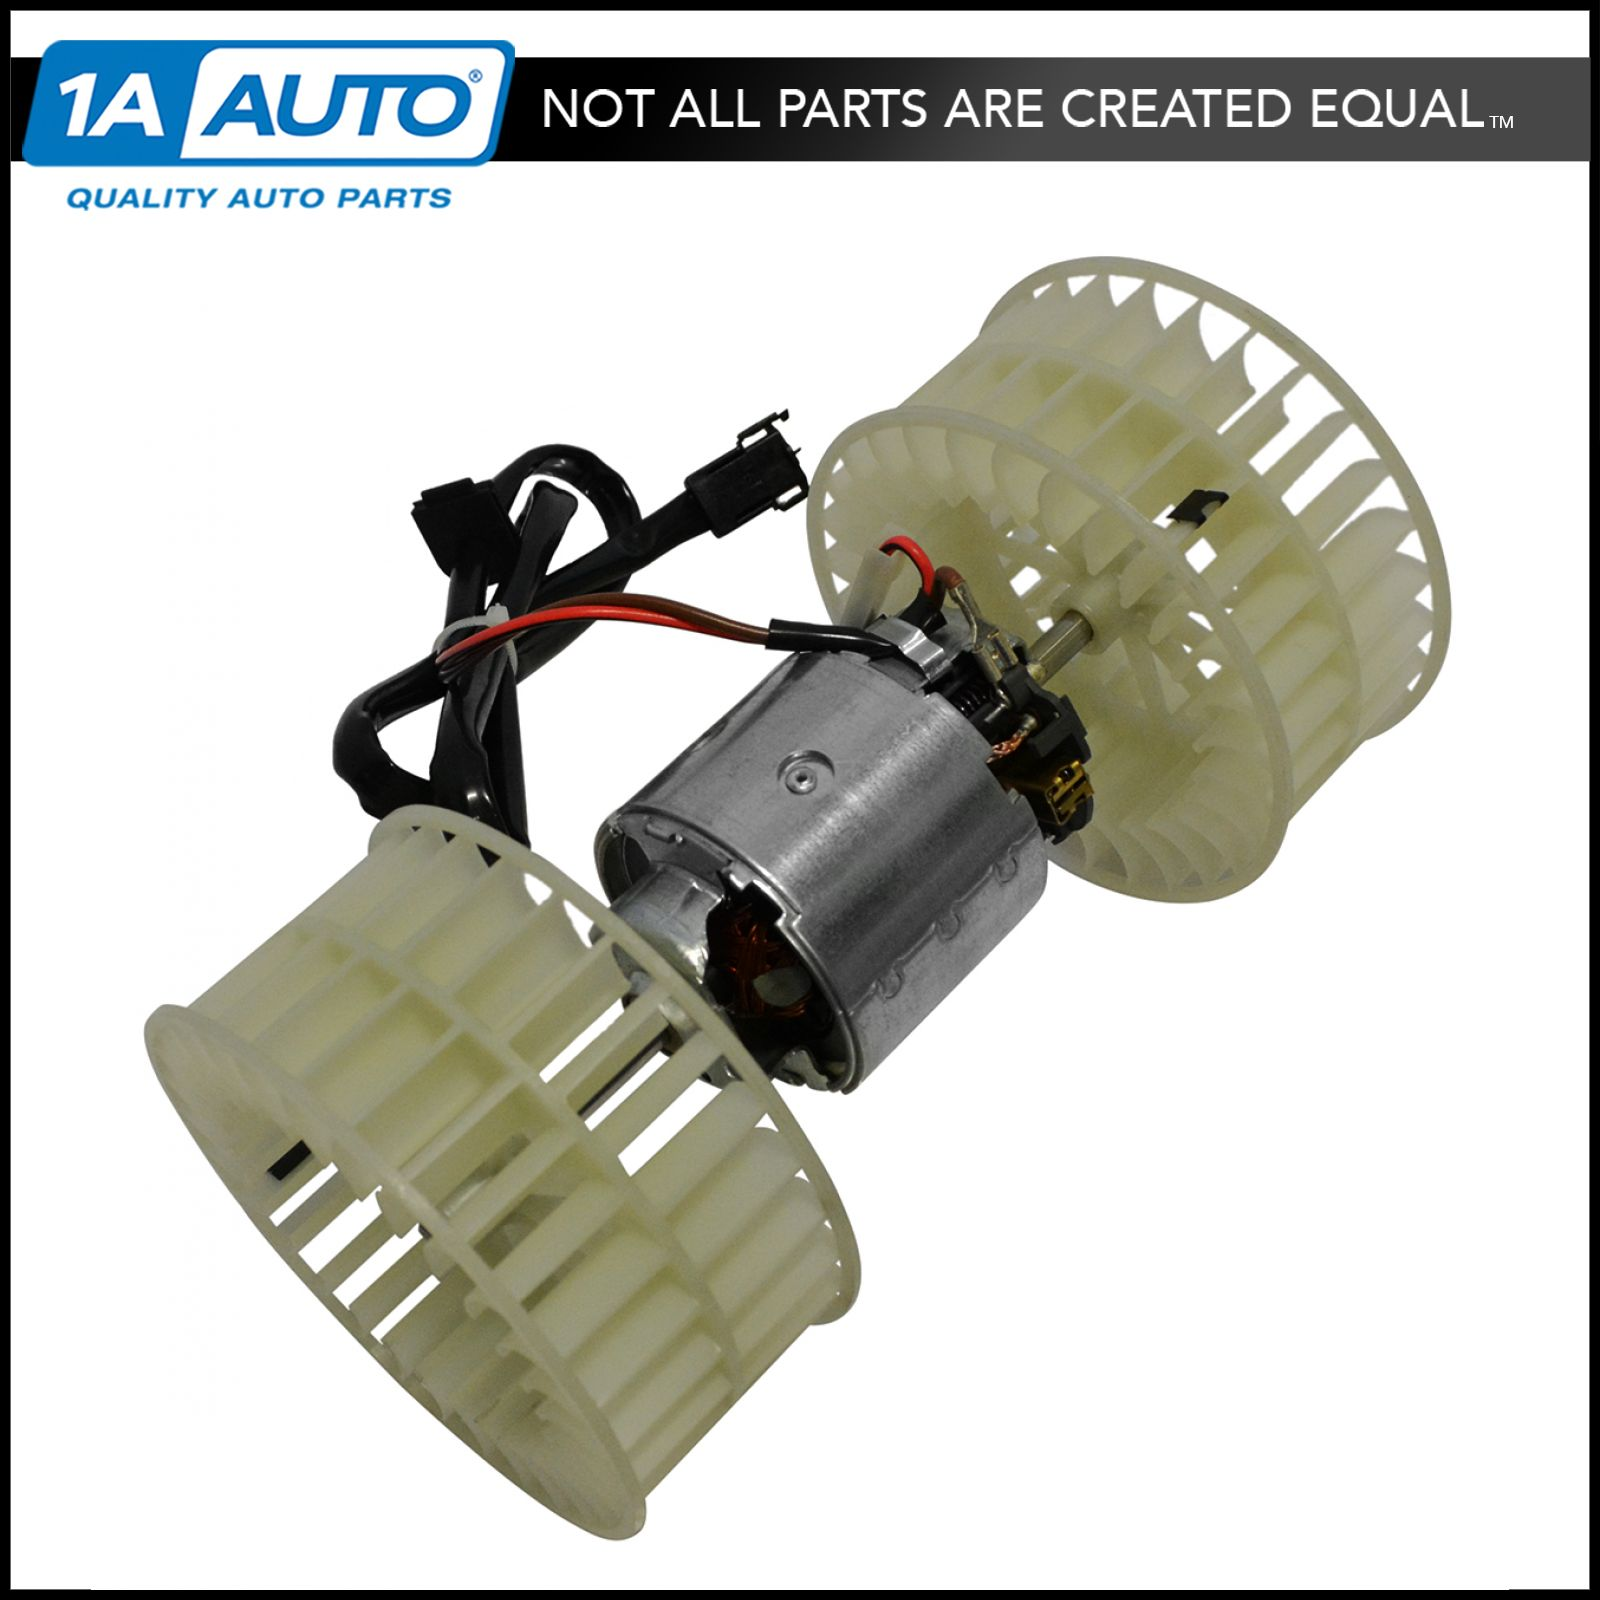 HVAC Heater Blower Assembly with Motor /& Fan Cage Brand New for Mercedes